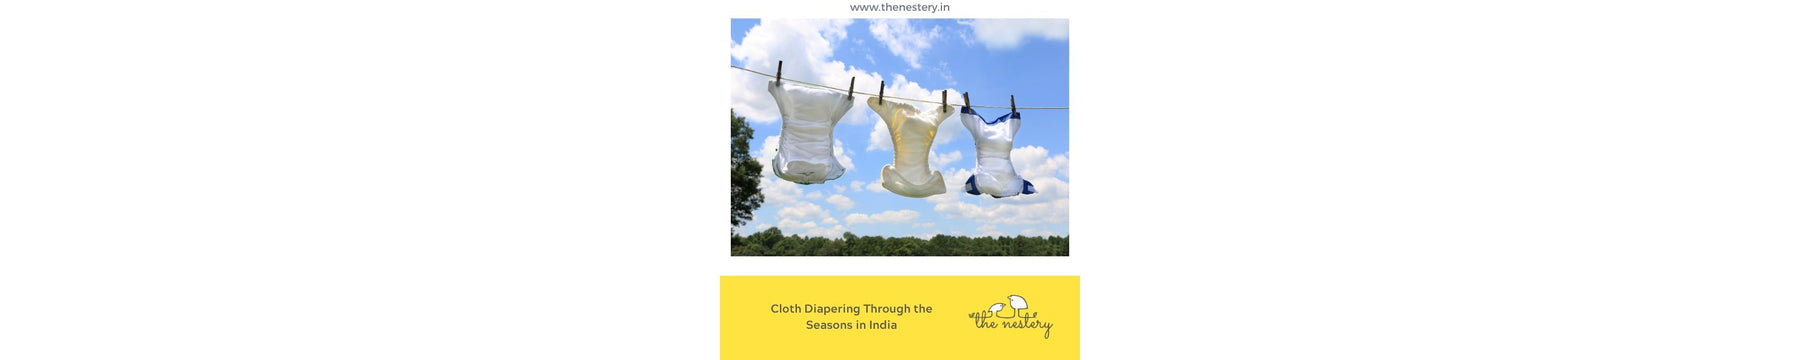 Cloth Diapering Through The Seasons in India